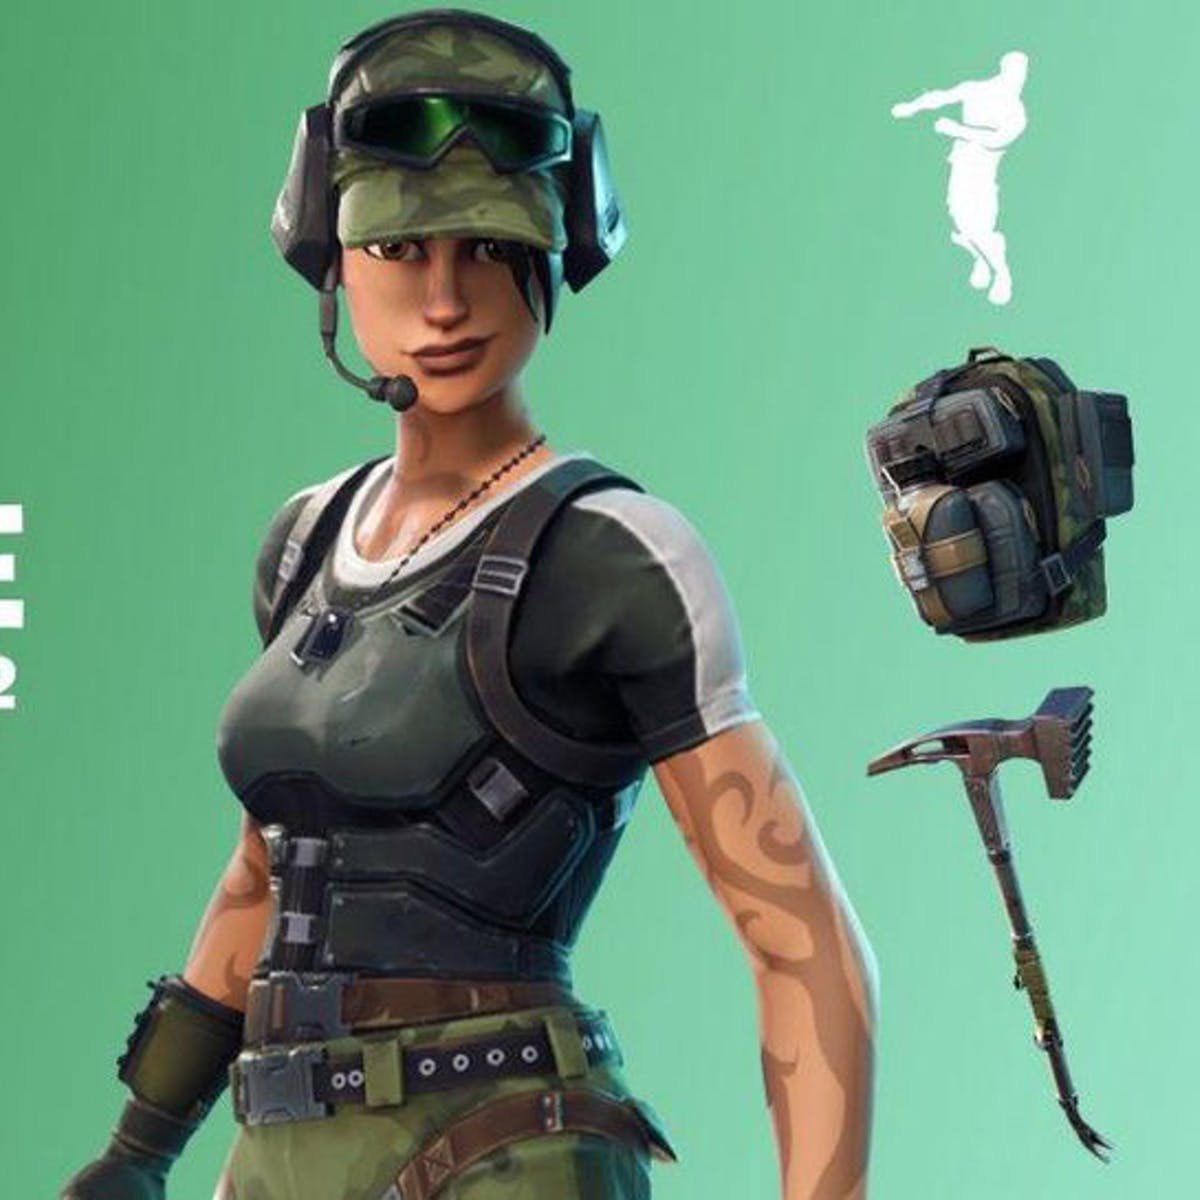 Hook up fortnite to twitch